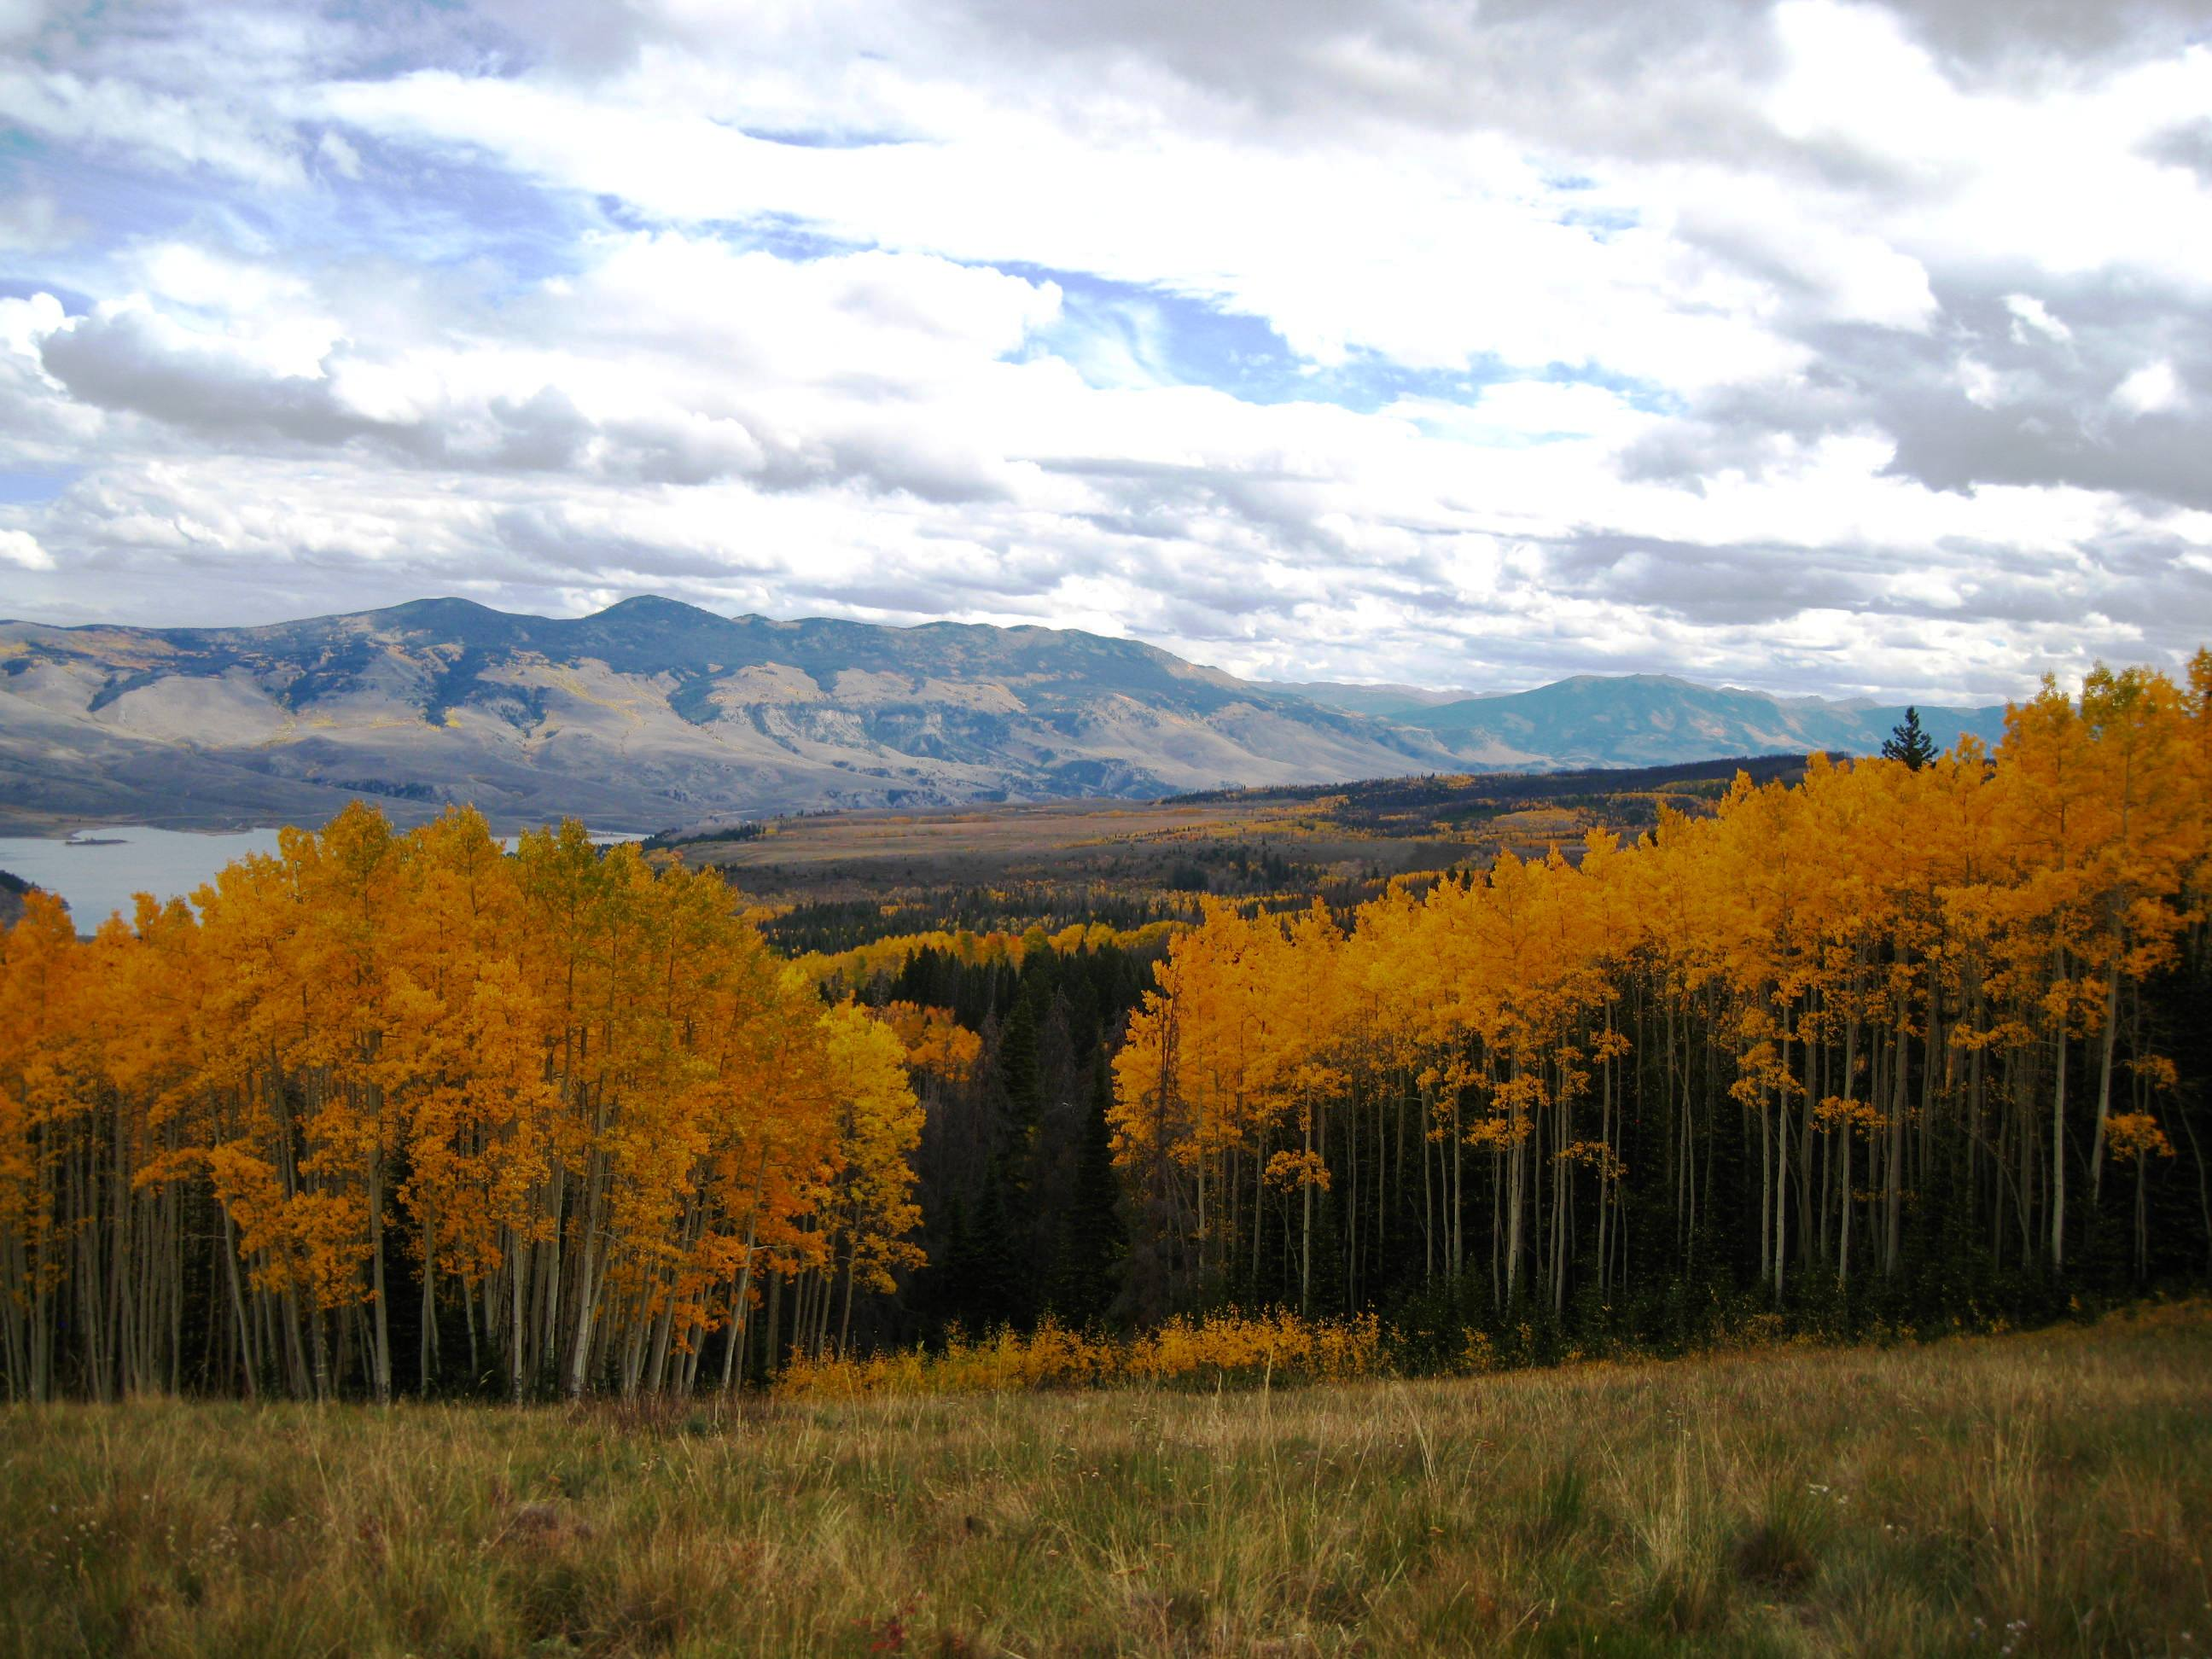 An open space property with fall foliage in the foreground and mountains in the background.